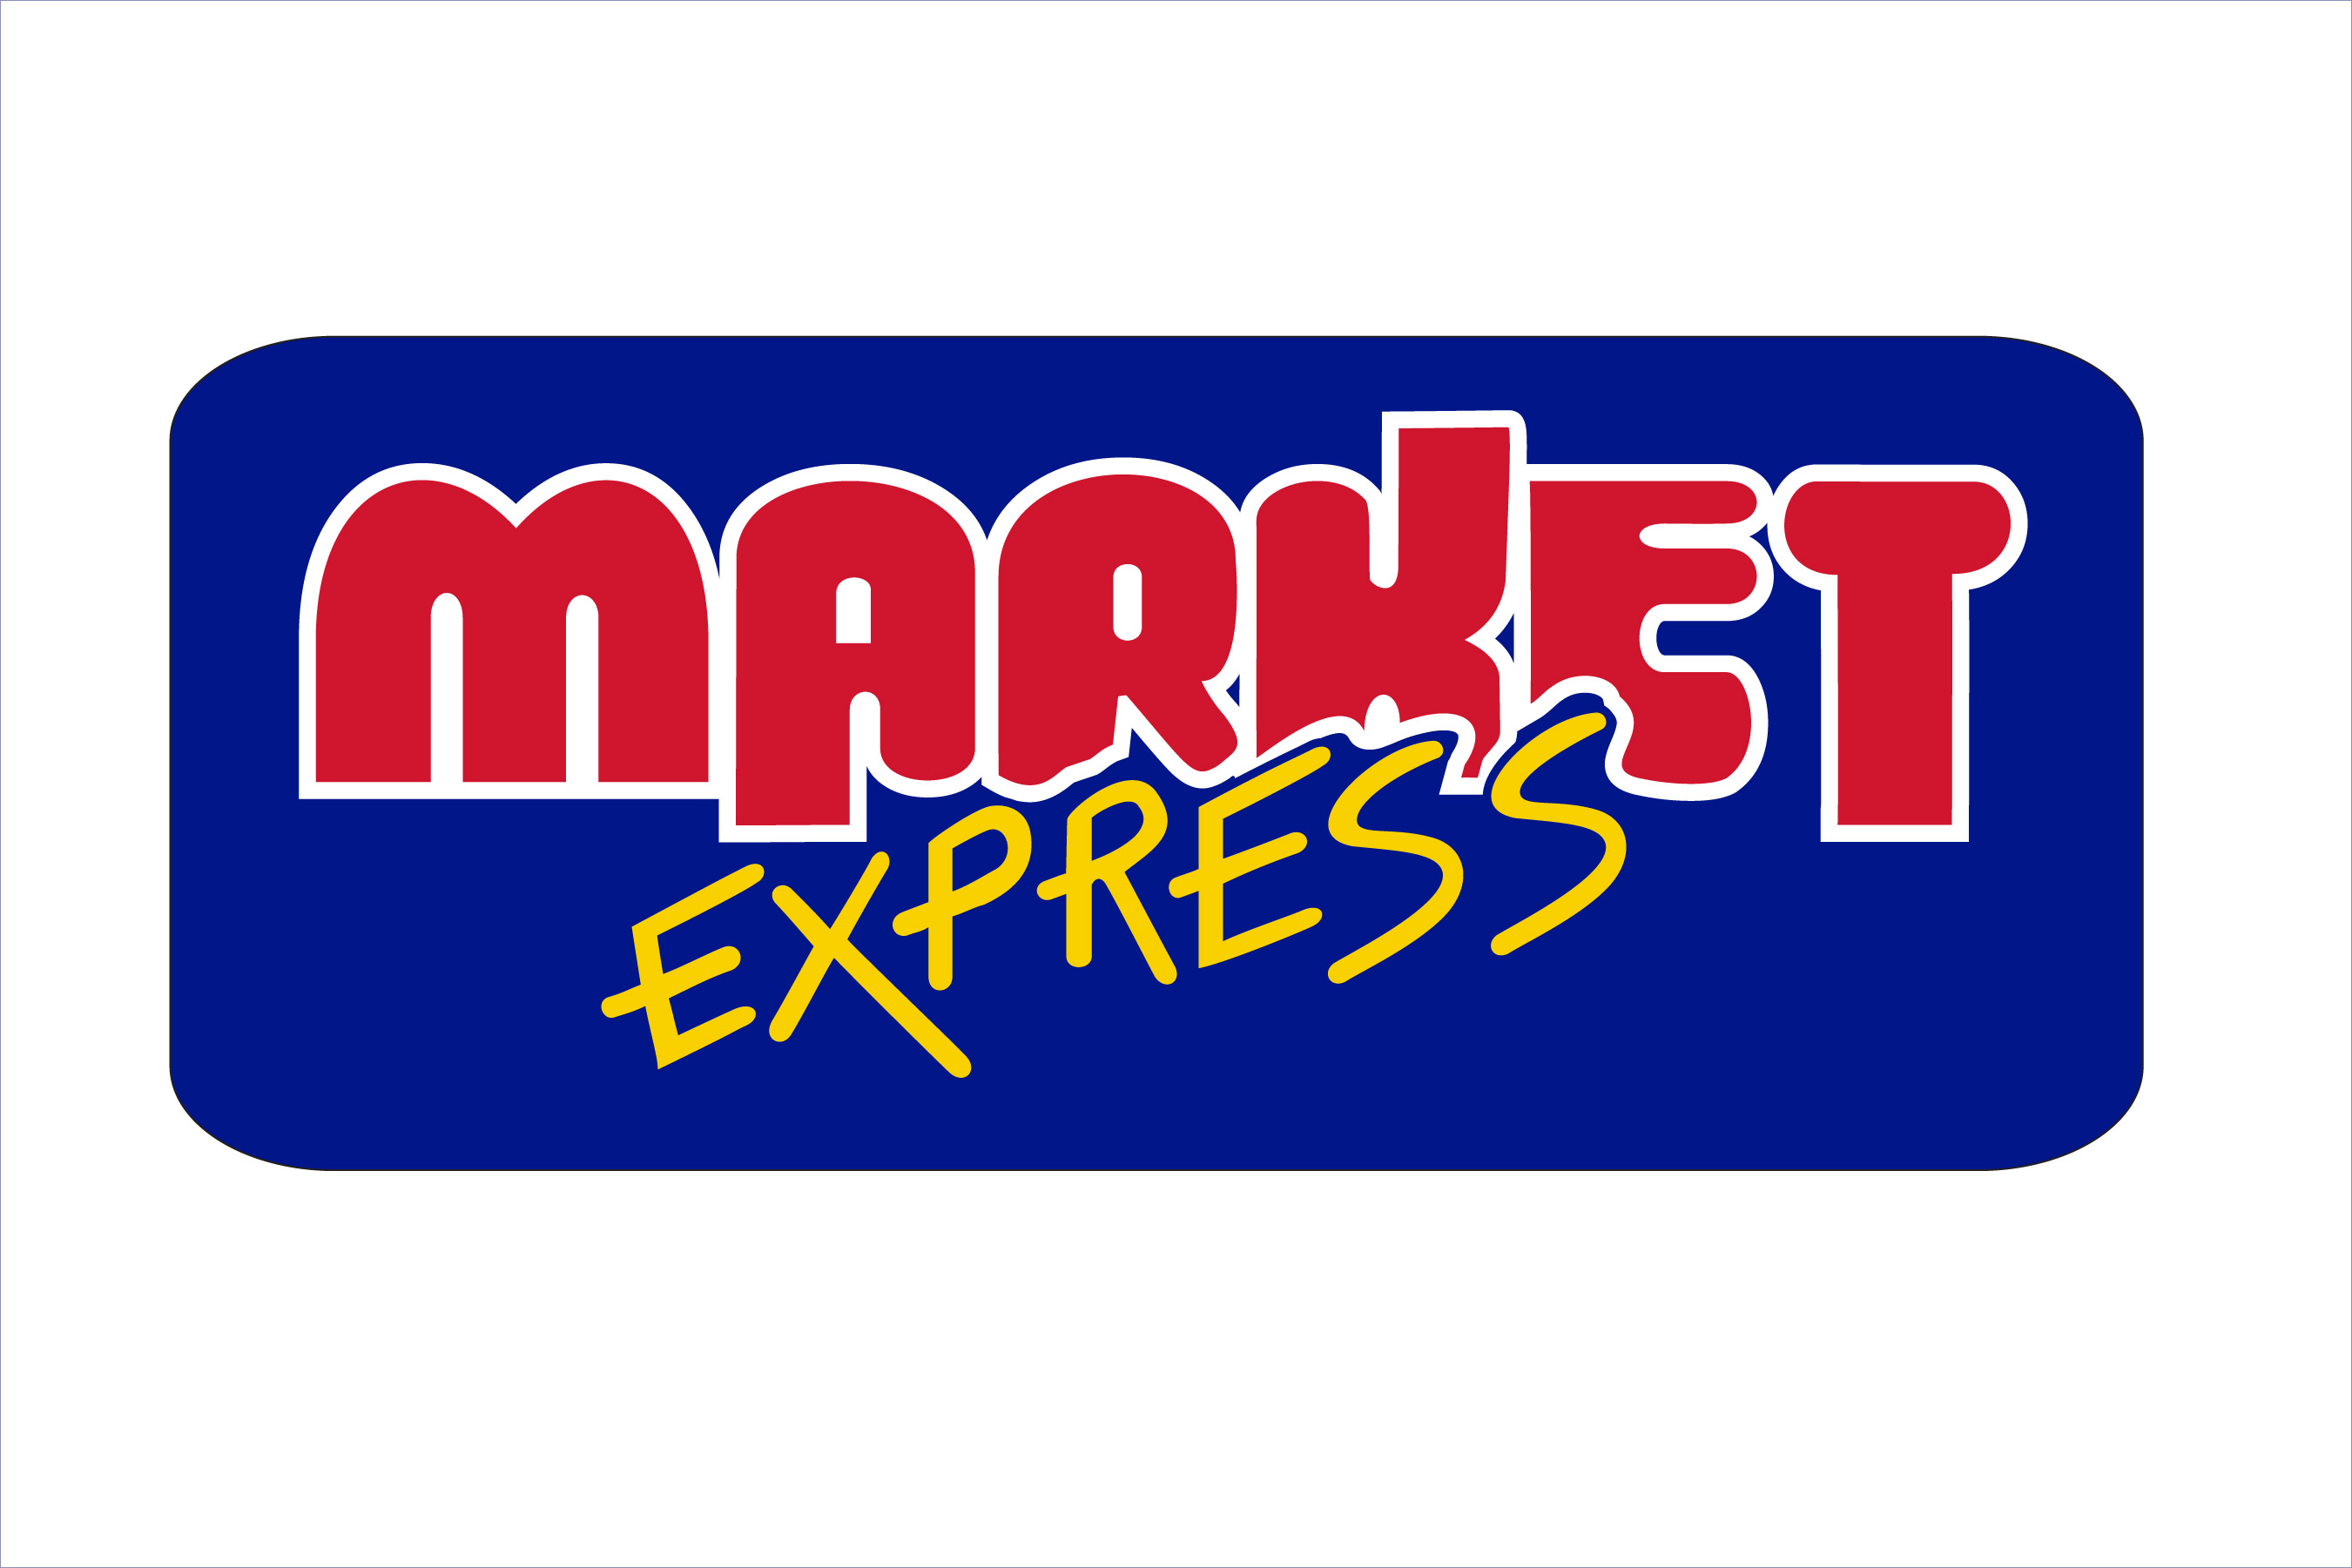 MARKET EXPRESS - WASH CARD